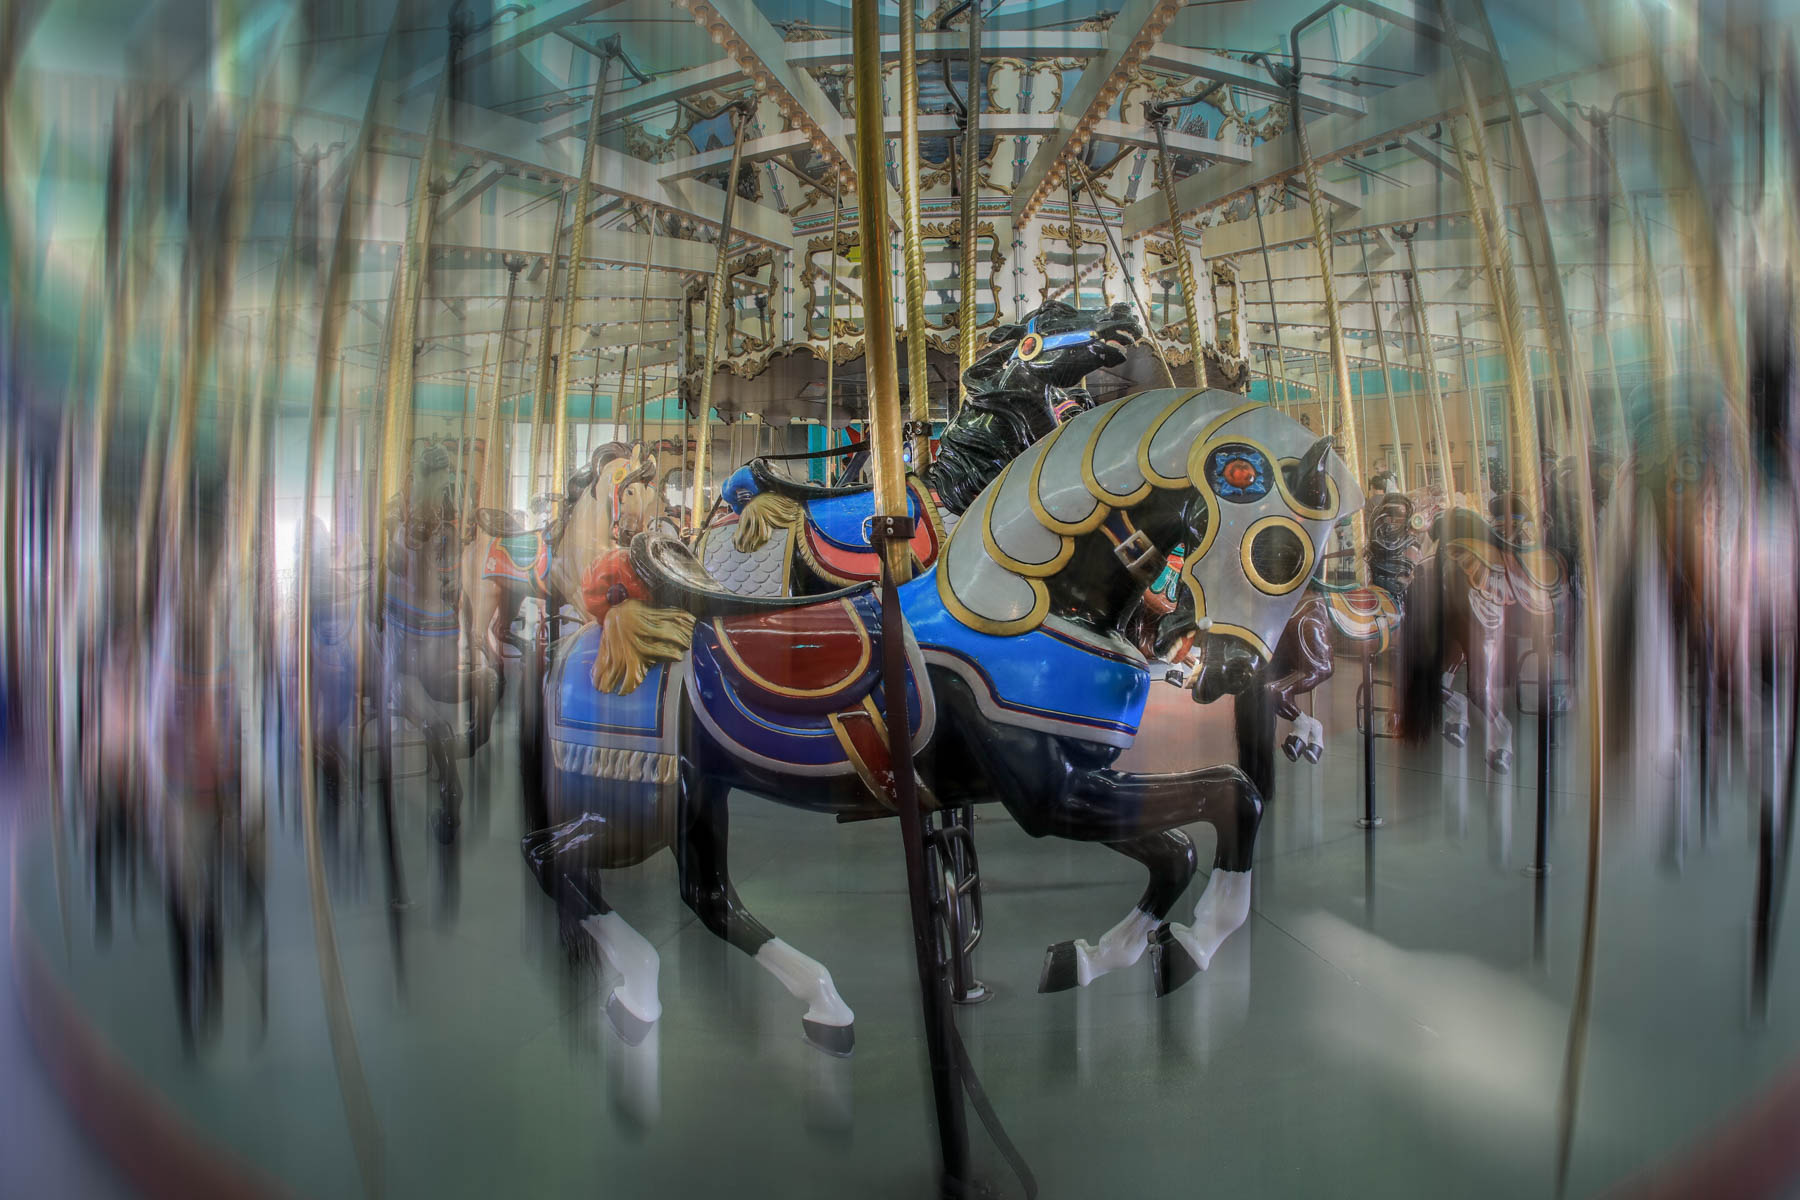 Those beautiful Carousels by Jim Berger Photographer